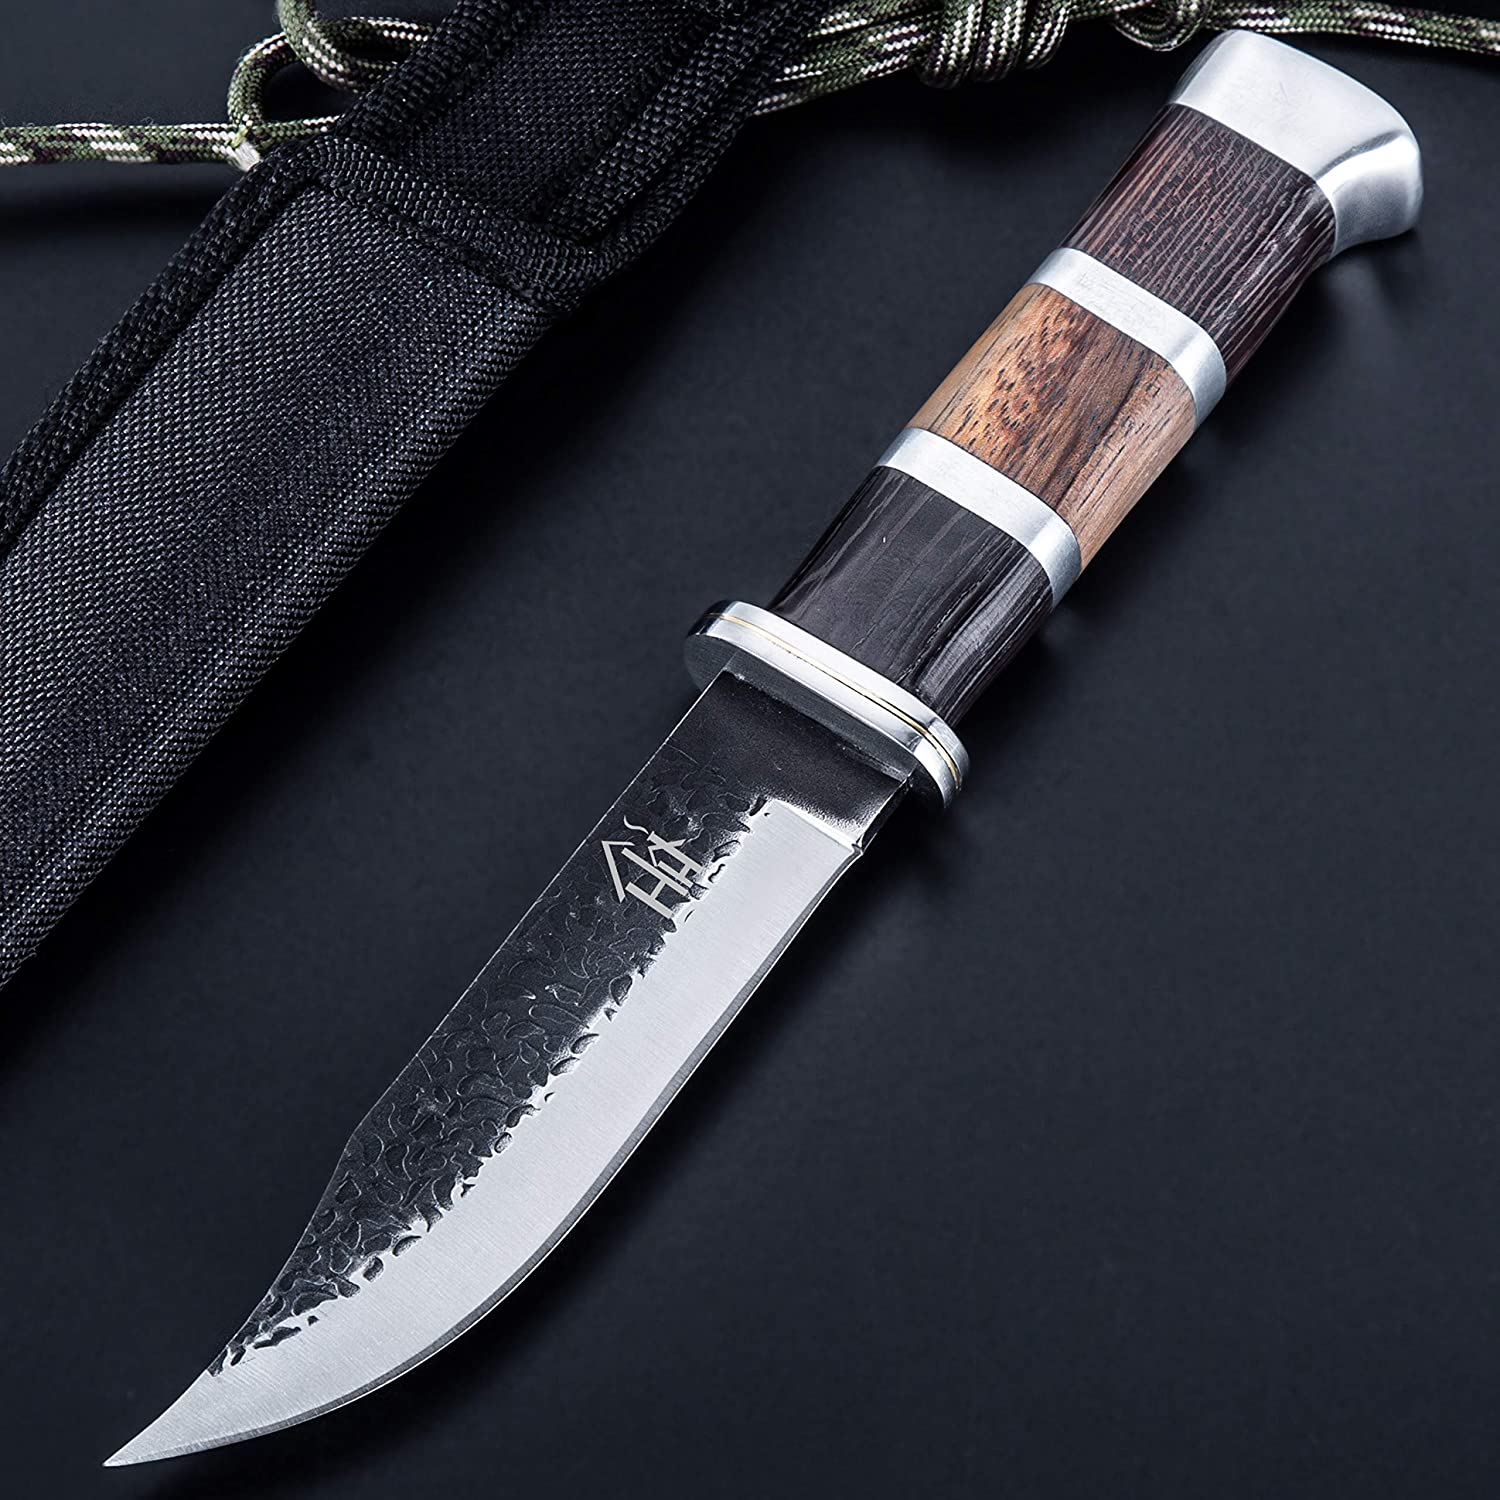 Hobby Hut HH-353 Fixed Blade Knife Stainless Max 47% OFF Bushcraft St 440C Limited Special Price